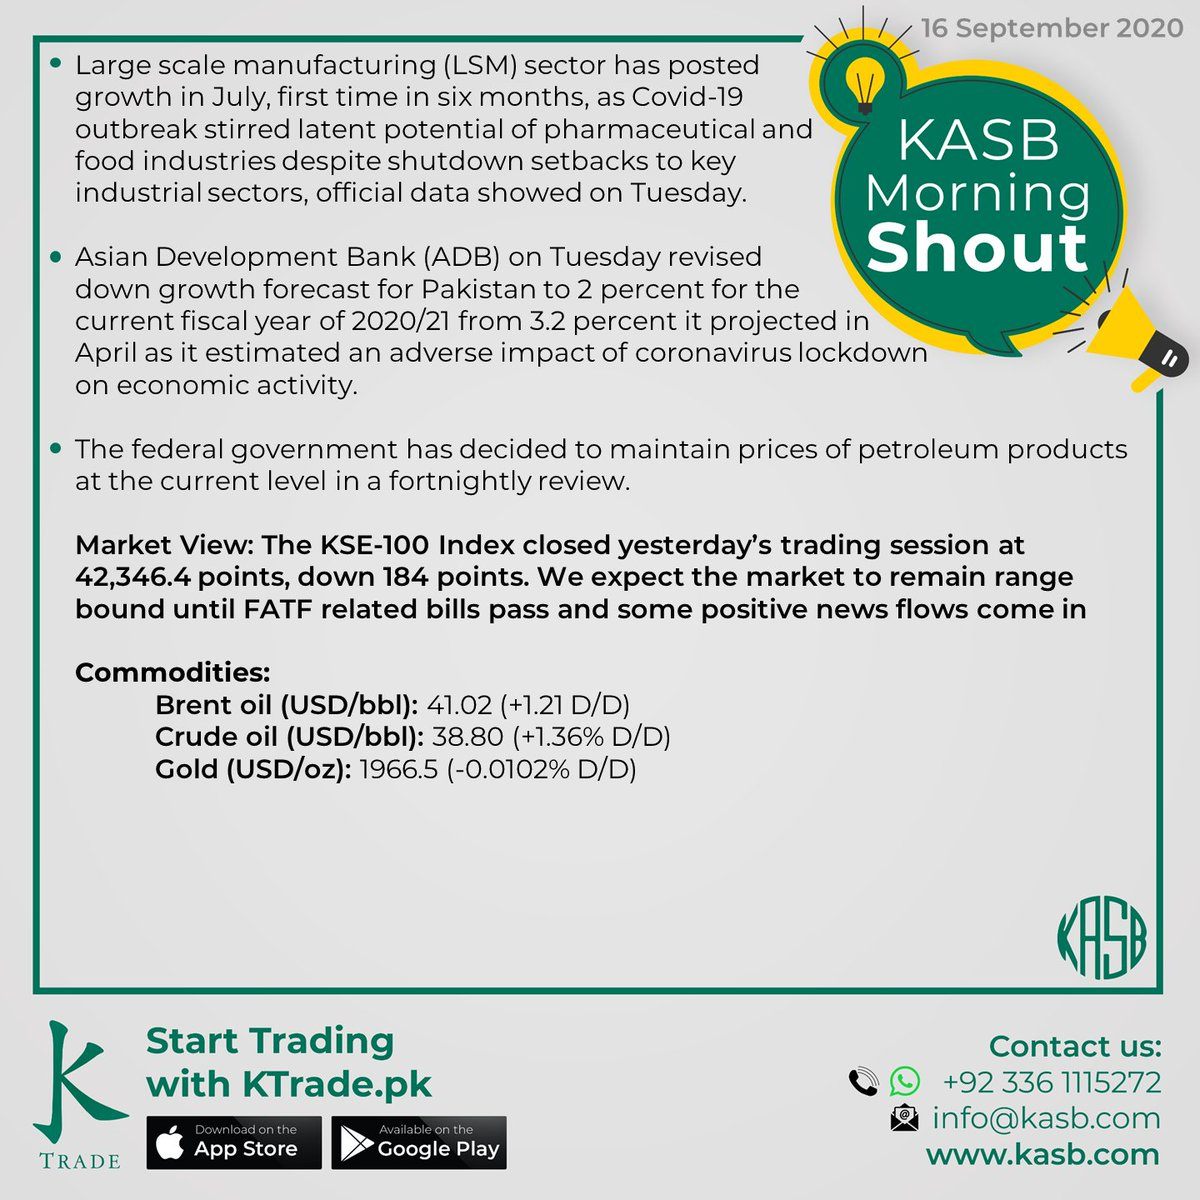 KASB Morning Shout: Our views on today's news #kasb #smartinvesting #psx #stockmarket #KTrade #onlinetrading #pakistaneconomy #imrankhan #sbp #inflation #kse100 #brokeragehouse #psxstocks #marketupdate #emergingmarkets #frontiermarkets #news #morning #today #views https://t.co/u1tJeT0hjn